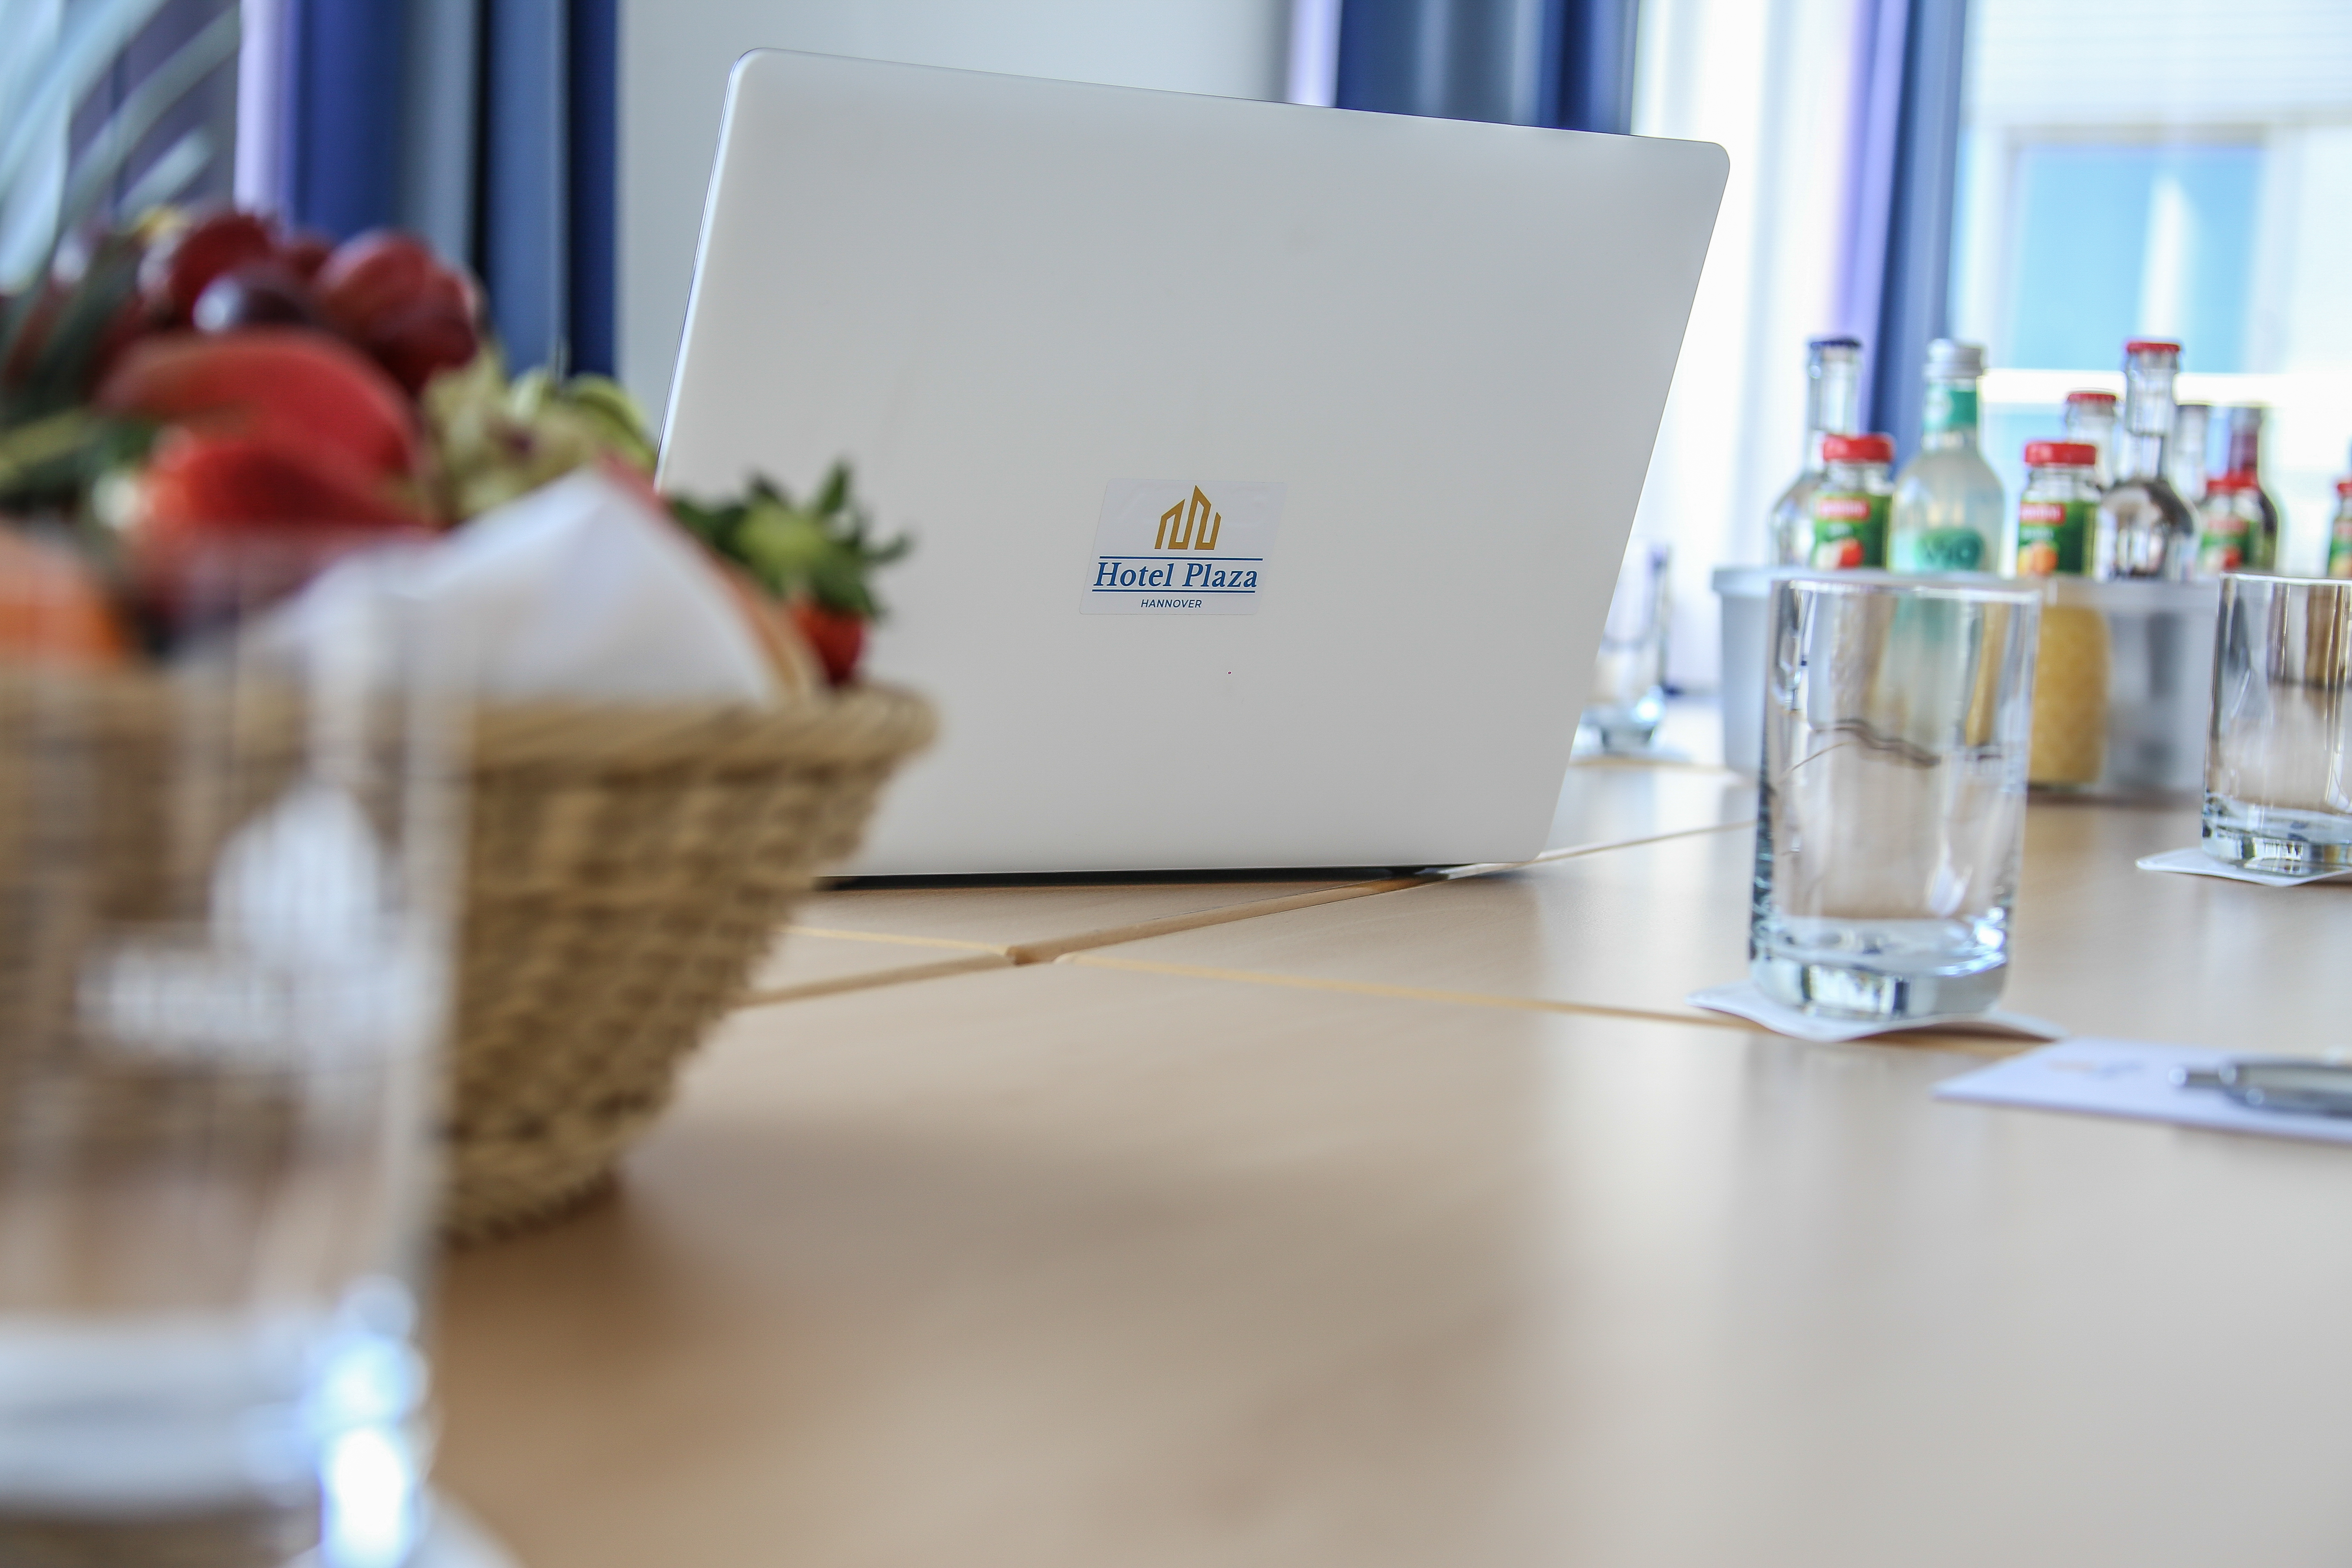 Meeting_Laptop_Hotel_Plaza_Hannover